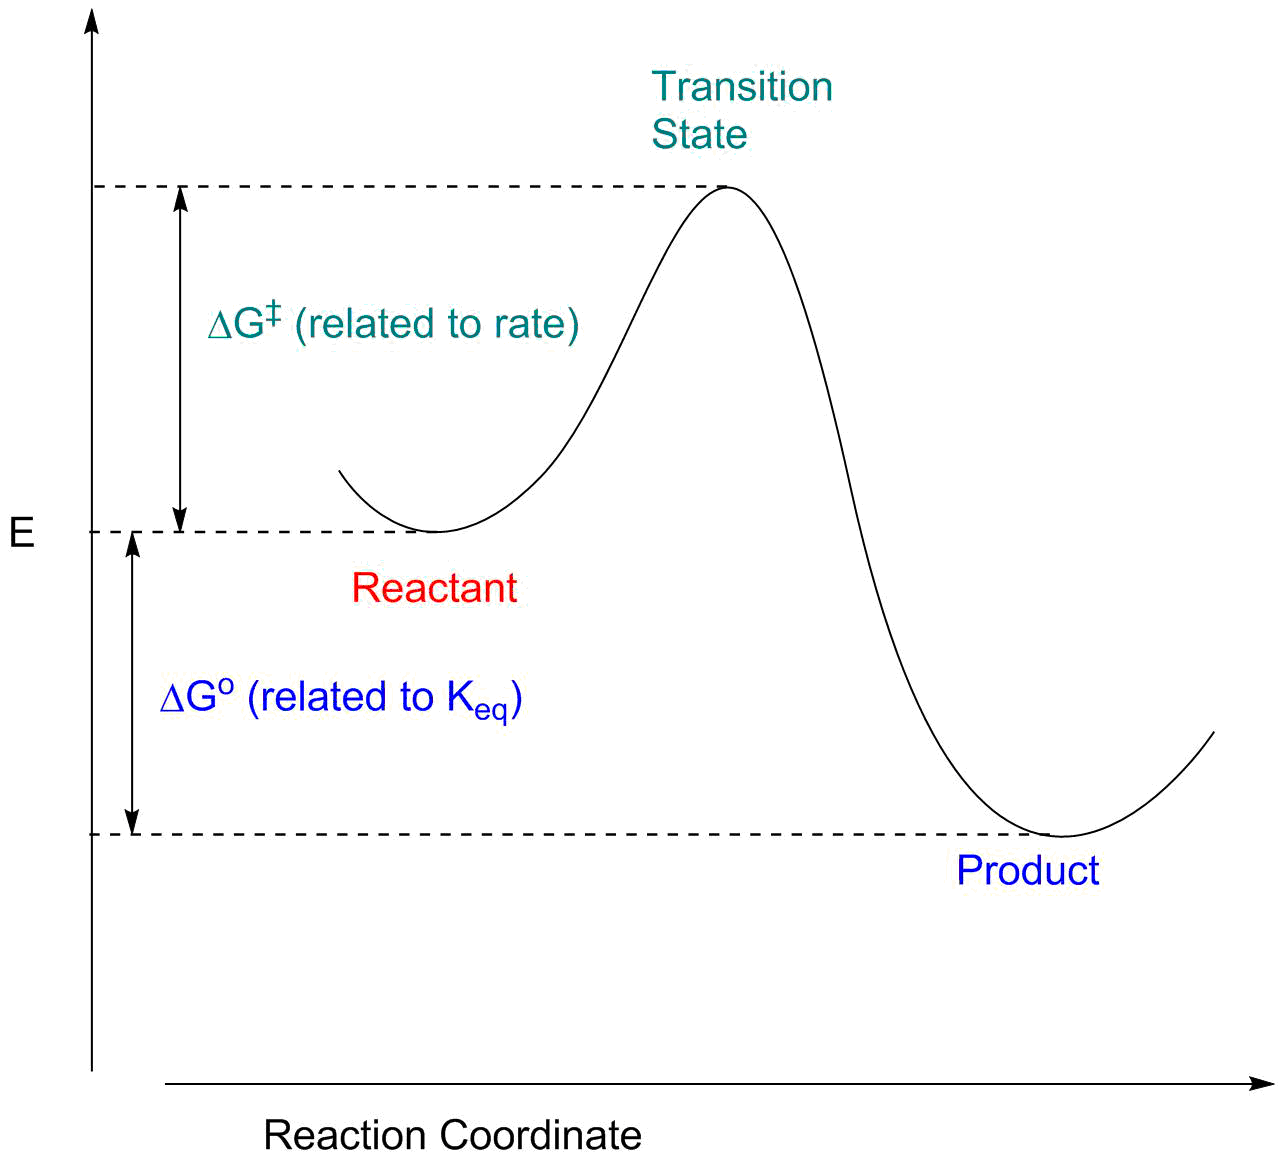 Reaction Energy Profiles